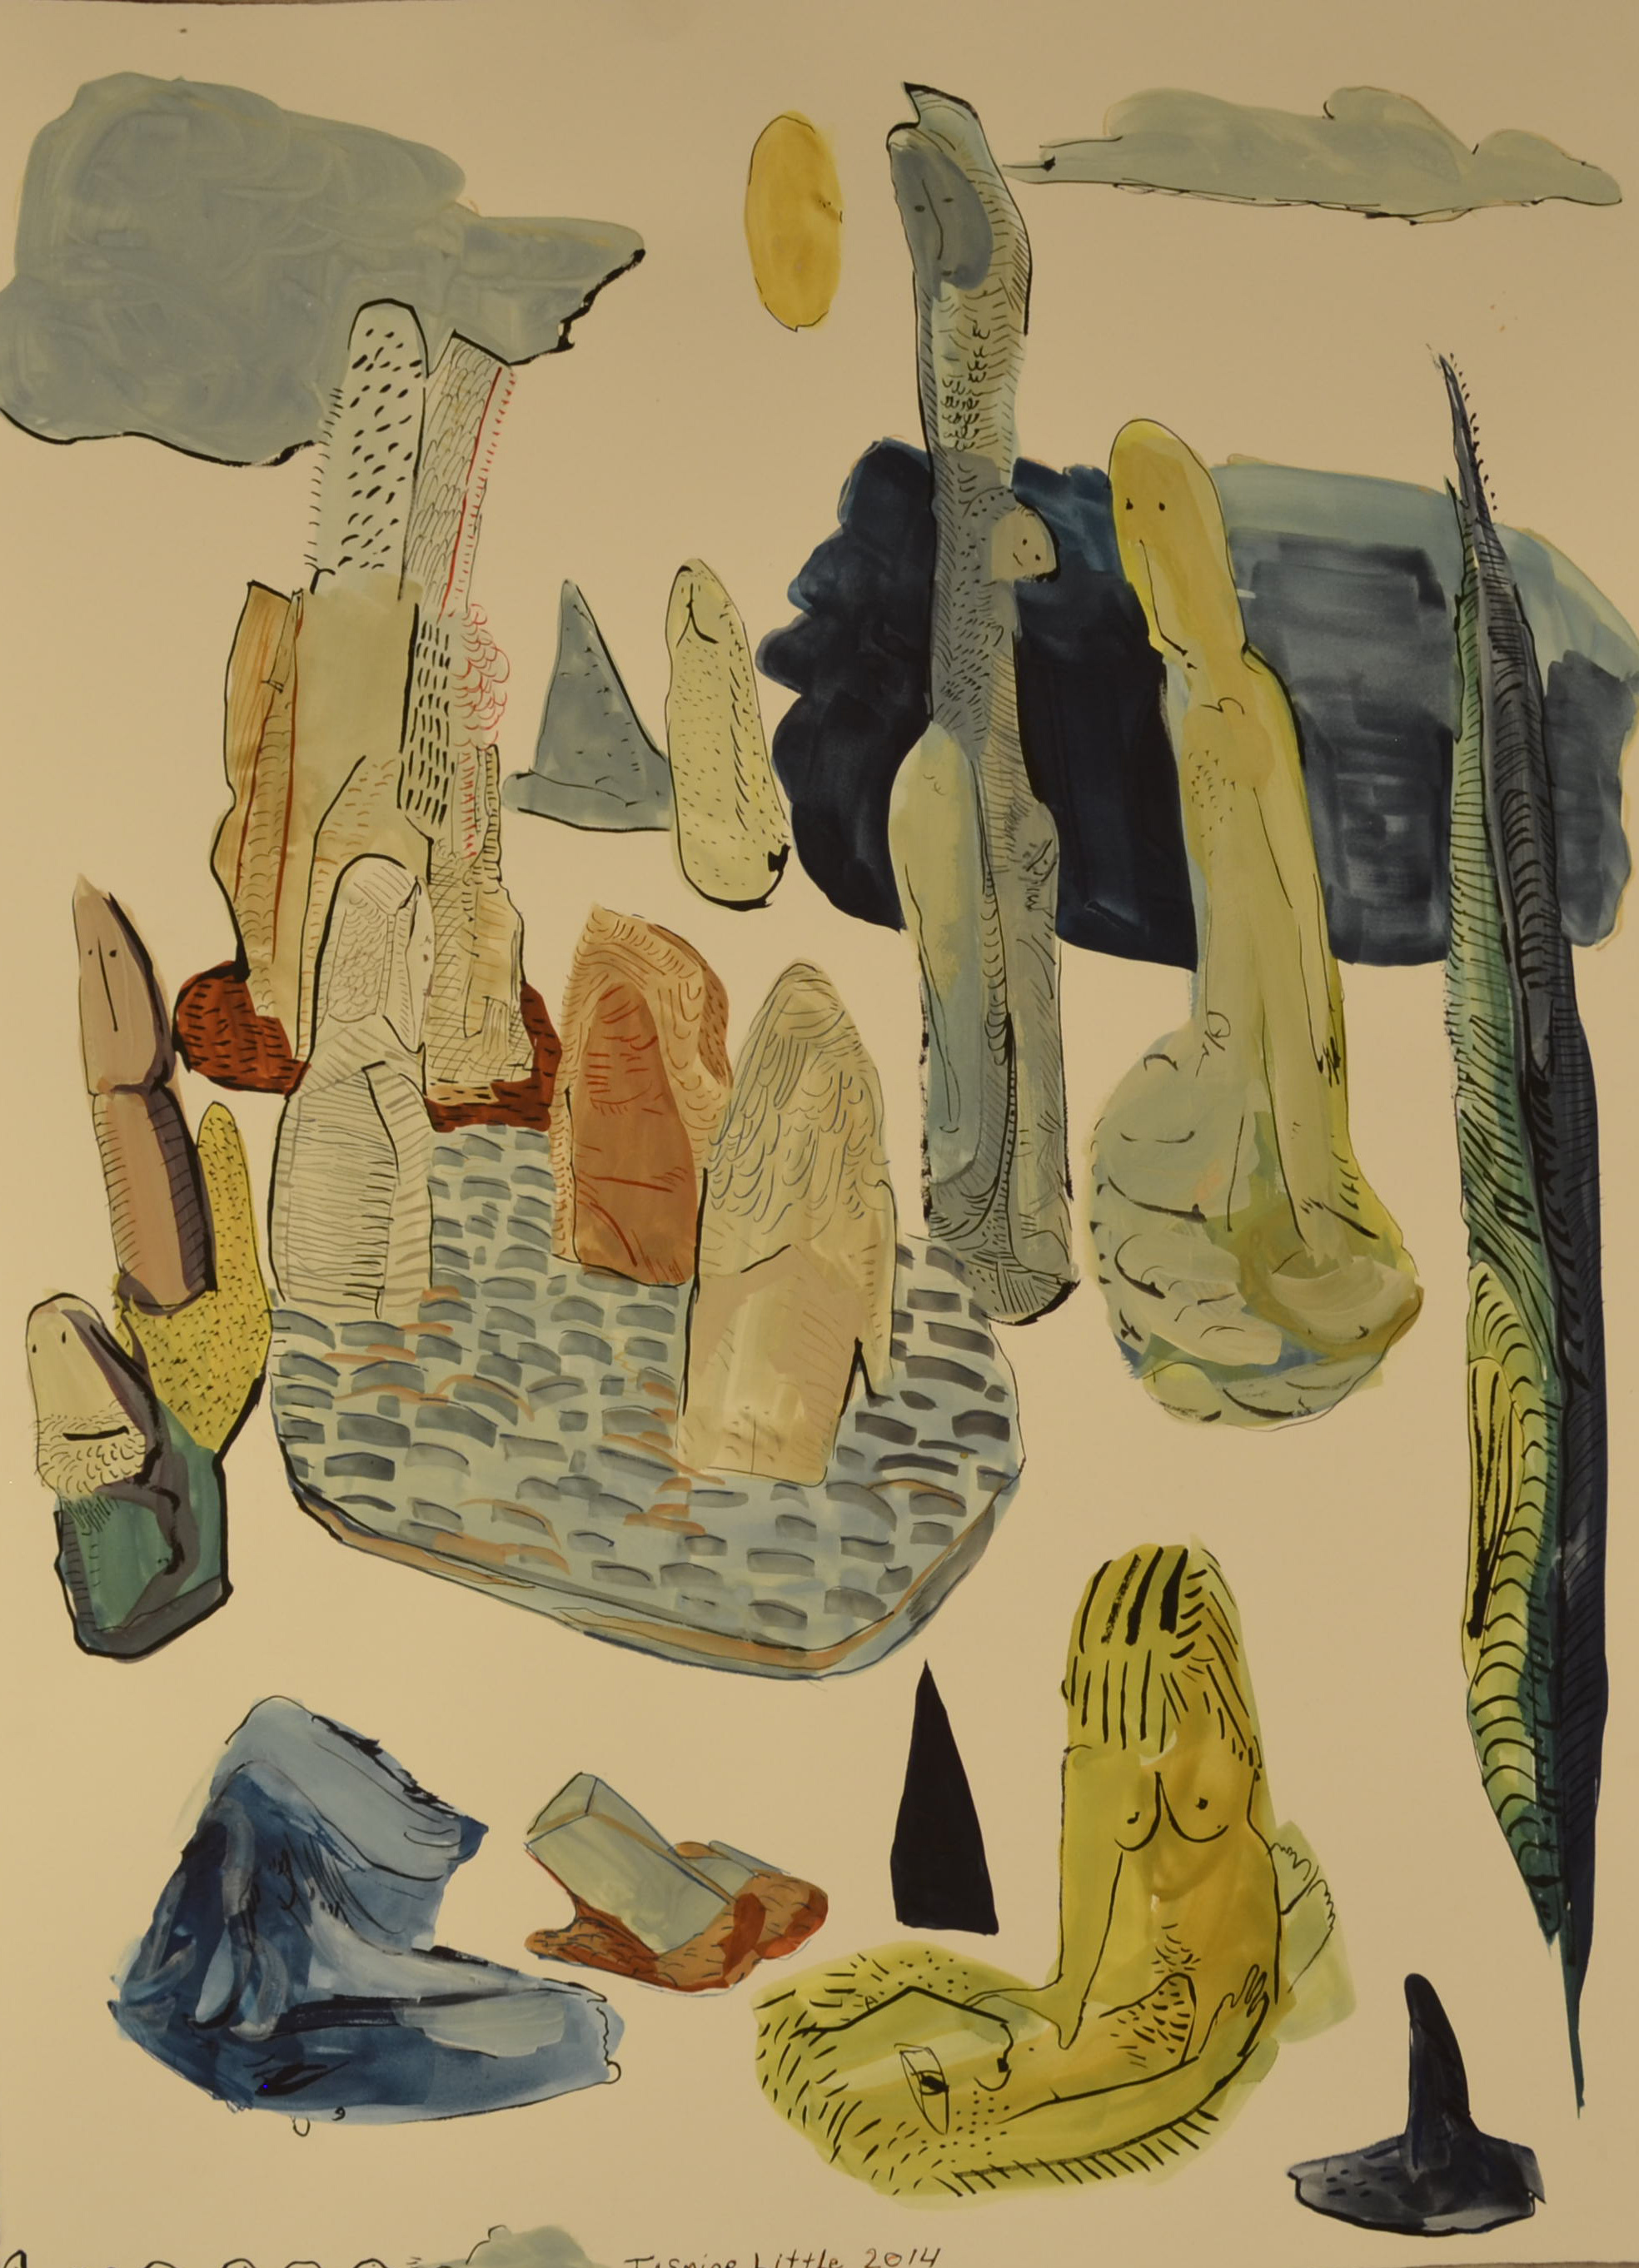 Blue Object Still Life,22 x 30 inches,watercolor on paper,2014.